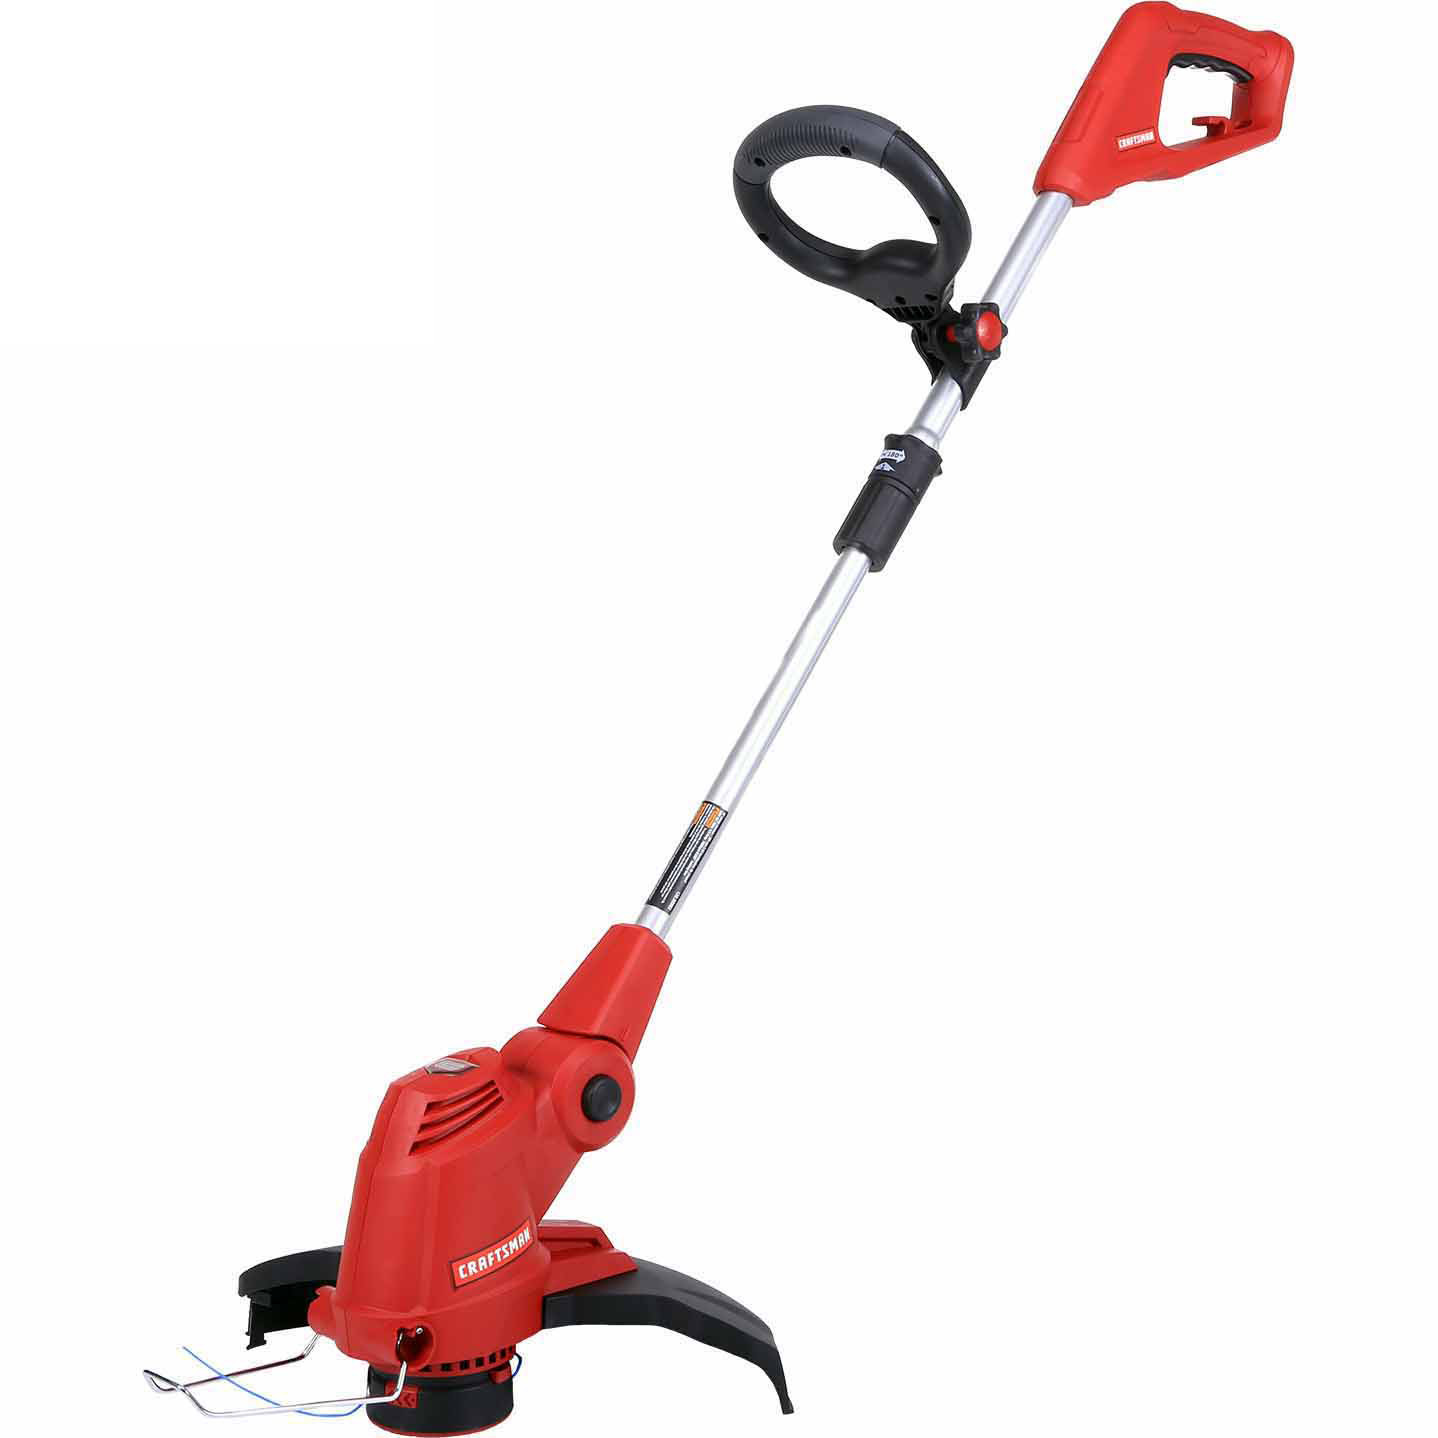 """Craftsman 15"""" Line Trimmer: Manicure your Lawn at Sears"""